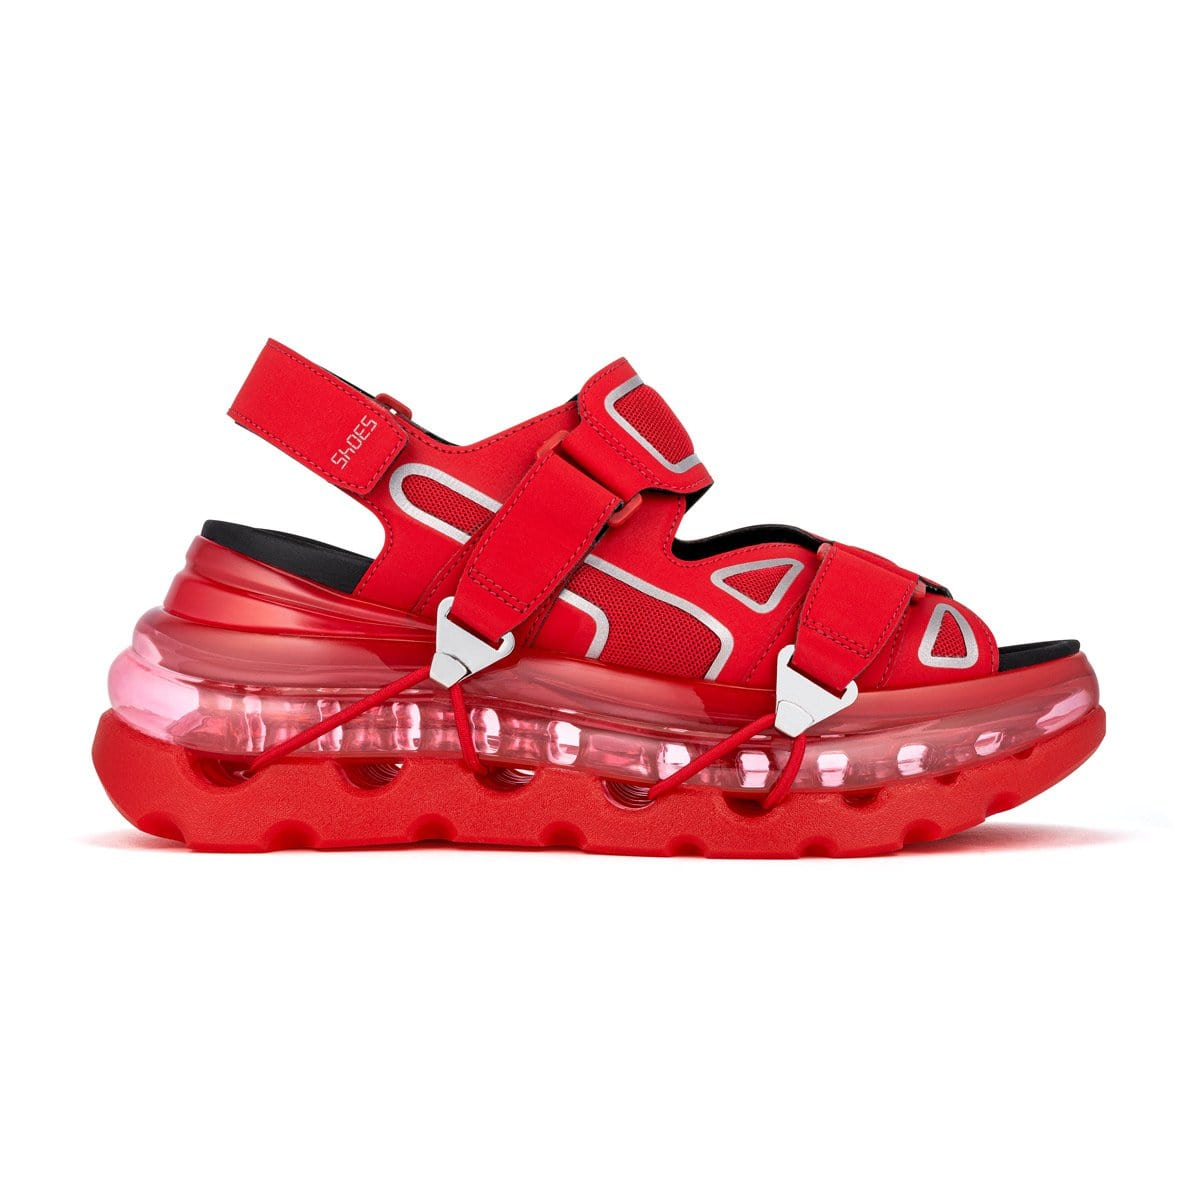 SHOES 53045 - SKYWALK'AIR - RED